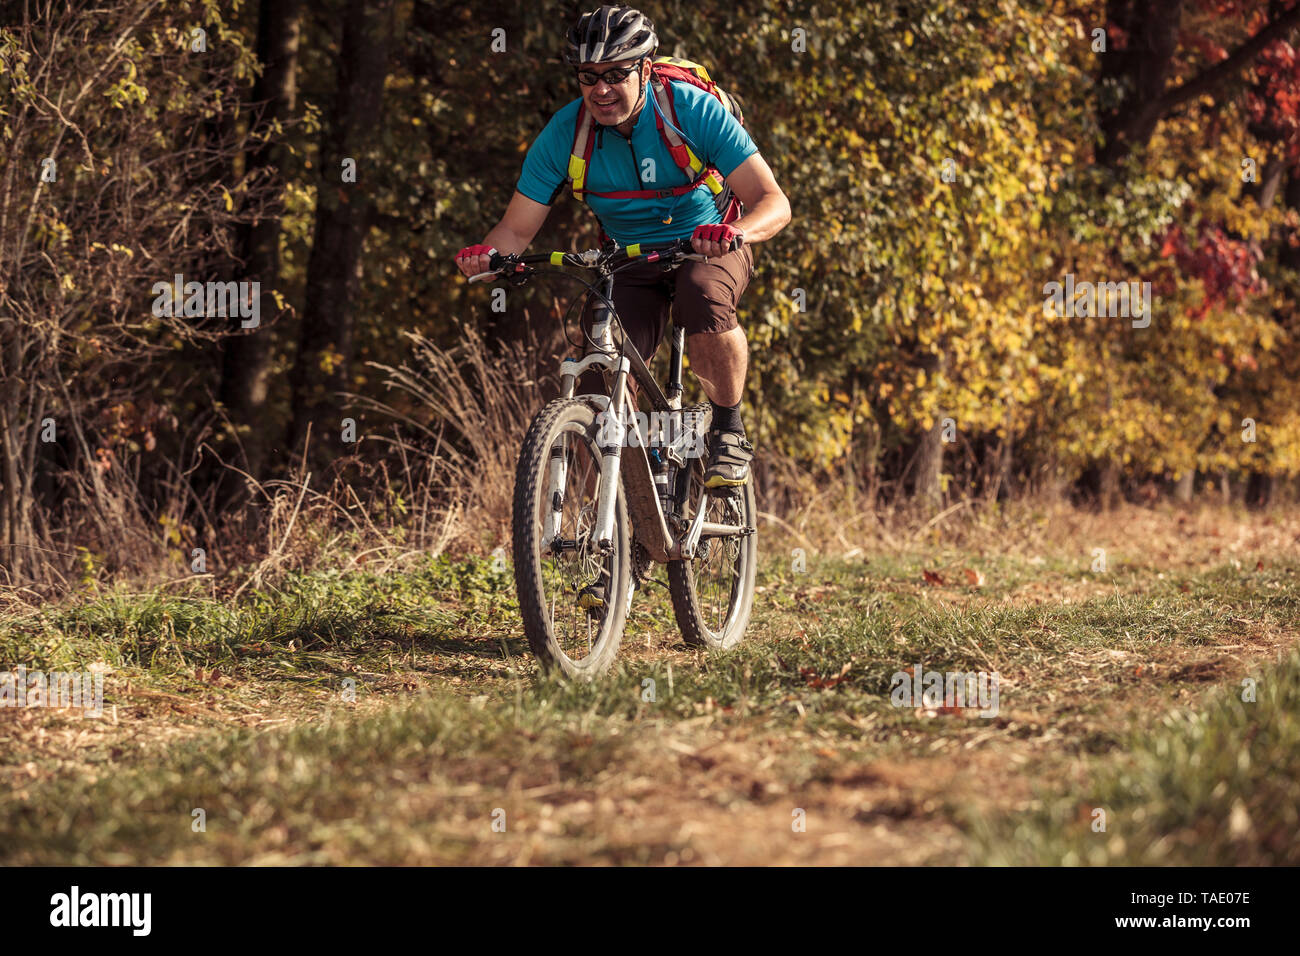 Man riding mountainbike on path by the forest - Stock Image